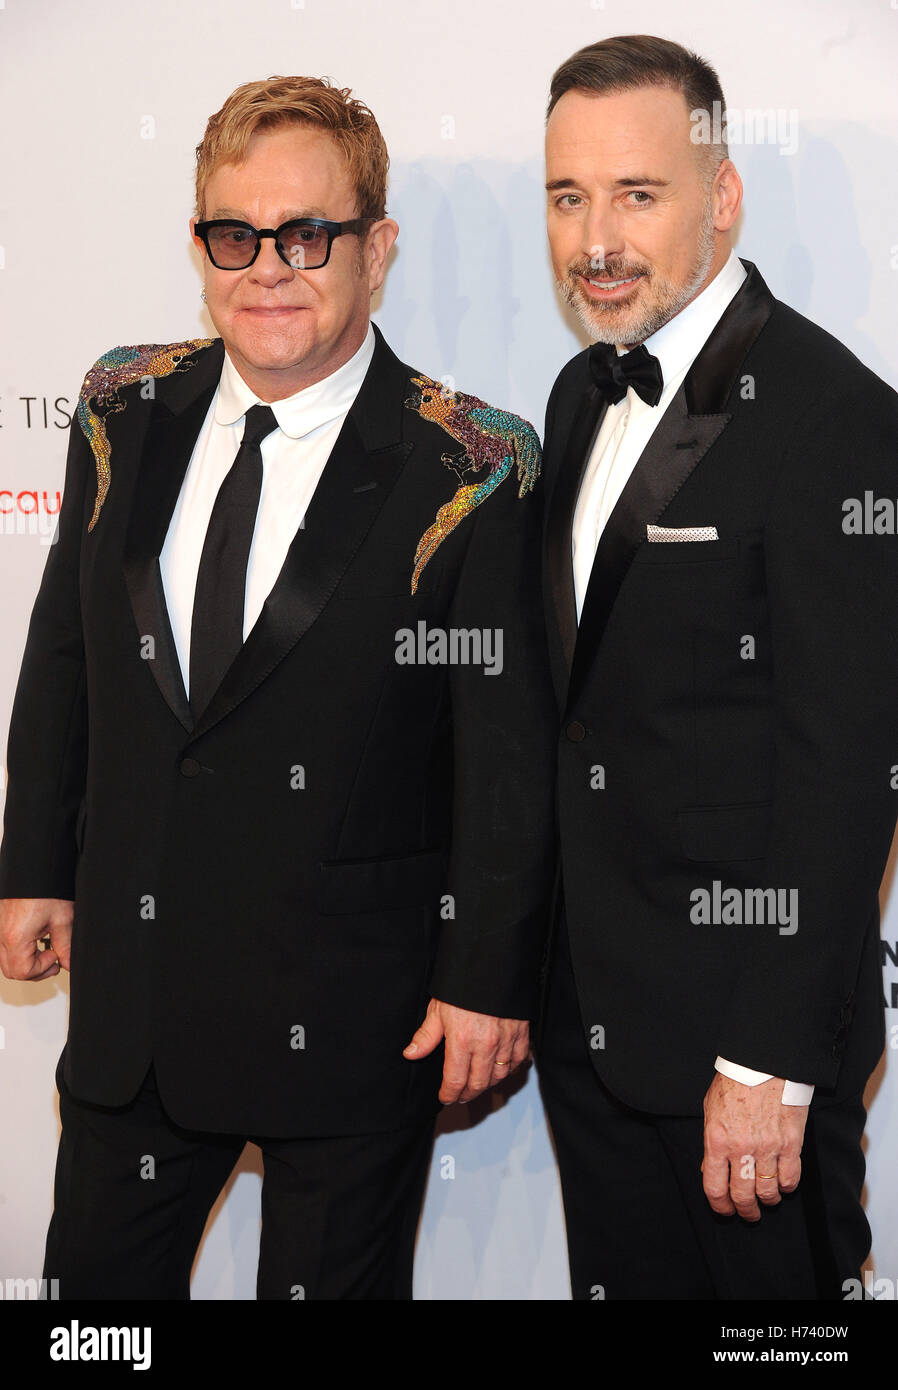 New York, NY, USA. 09Th Nov, 2016. Sir Elton John et David Furnish assister aux 15e assemblée annuelle de la Photo Stock